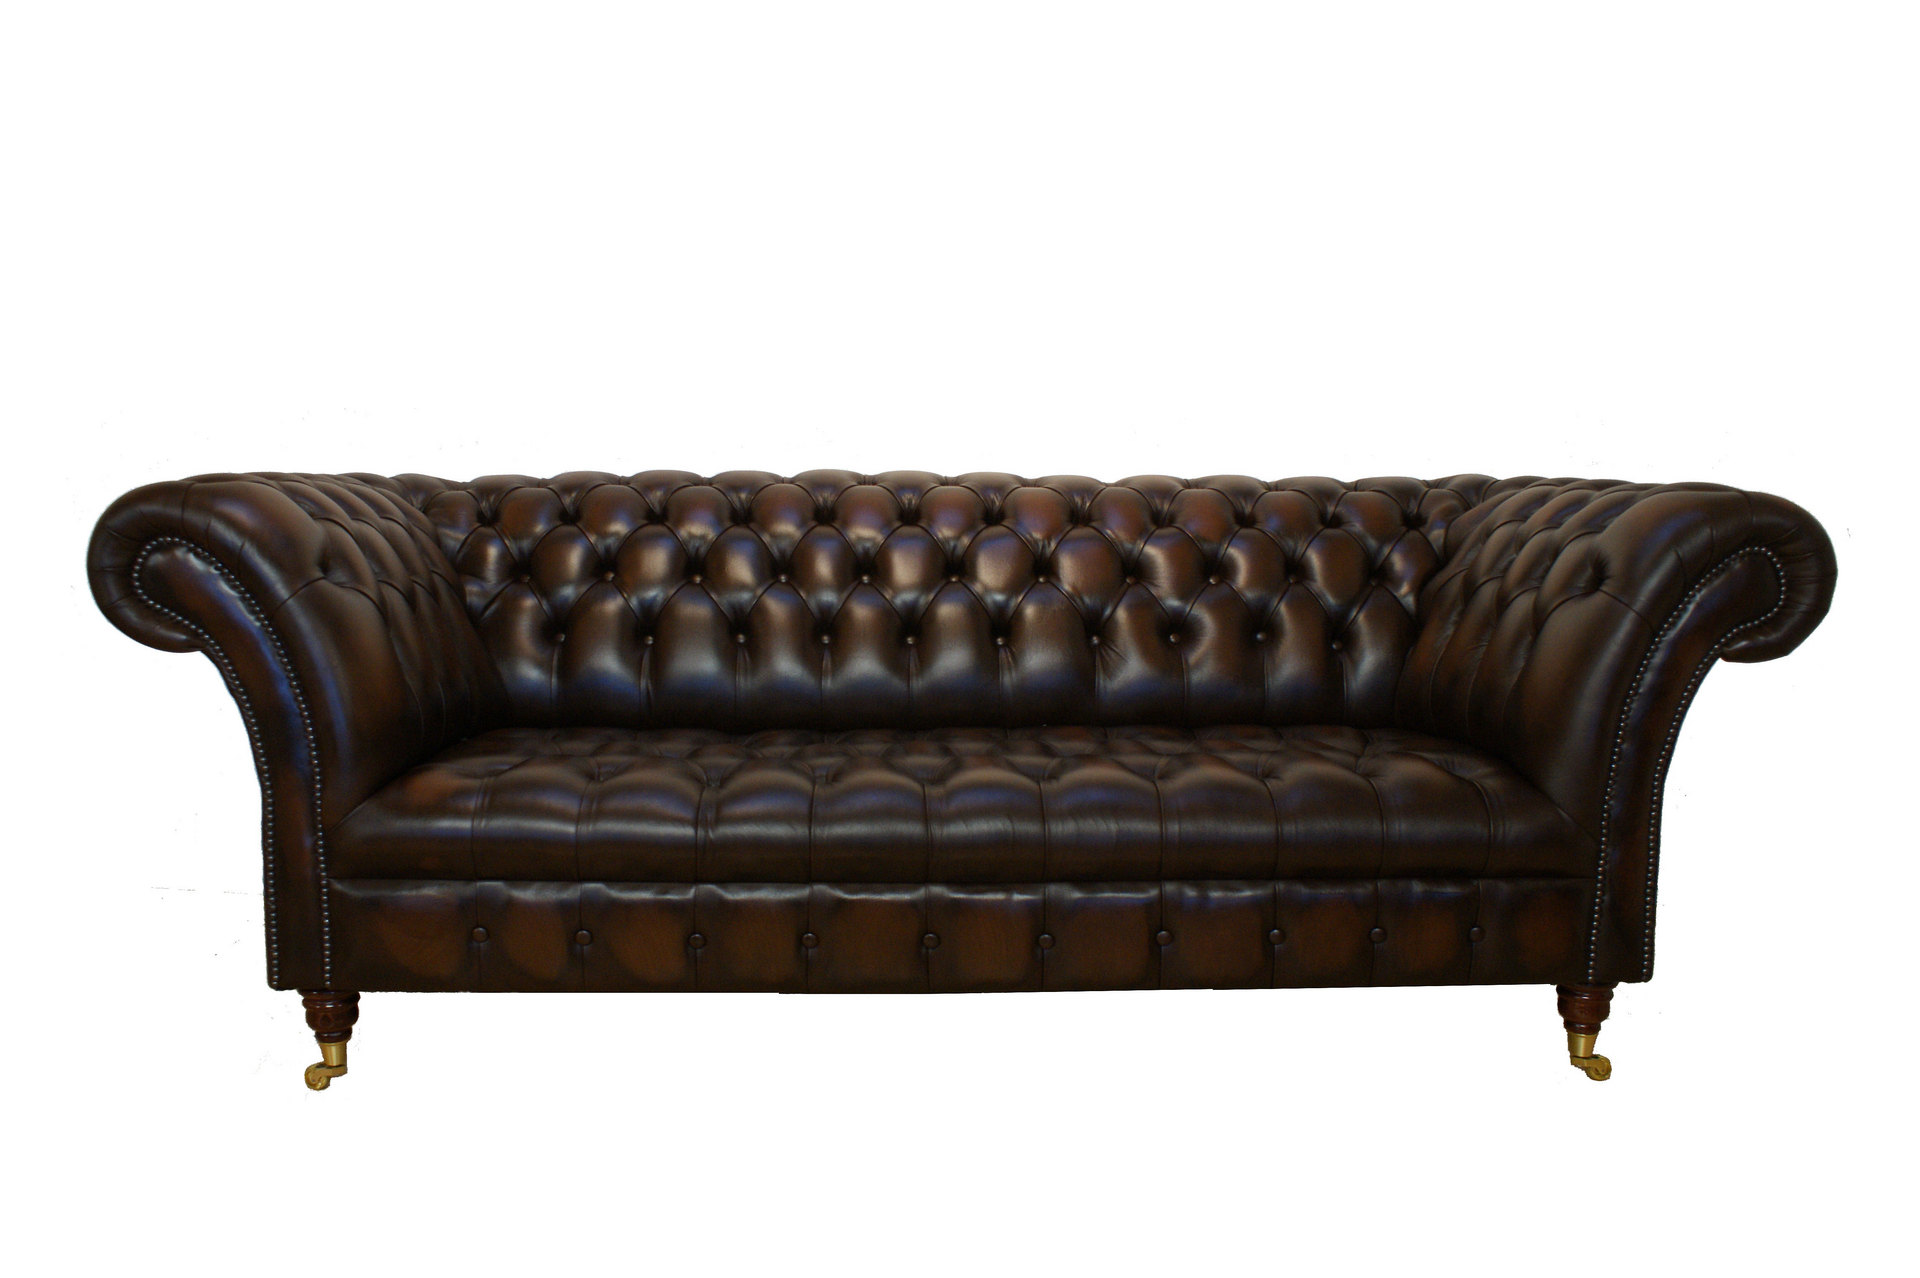 Leather Chesterfield Sofa | 1920 x 1278 · 213 kB · jpeg